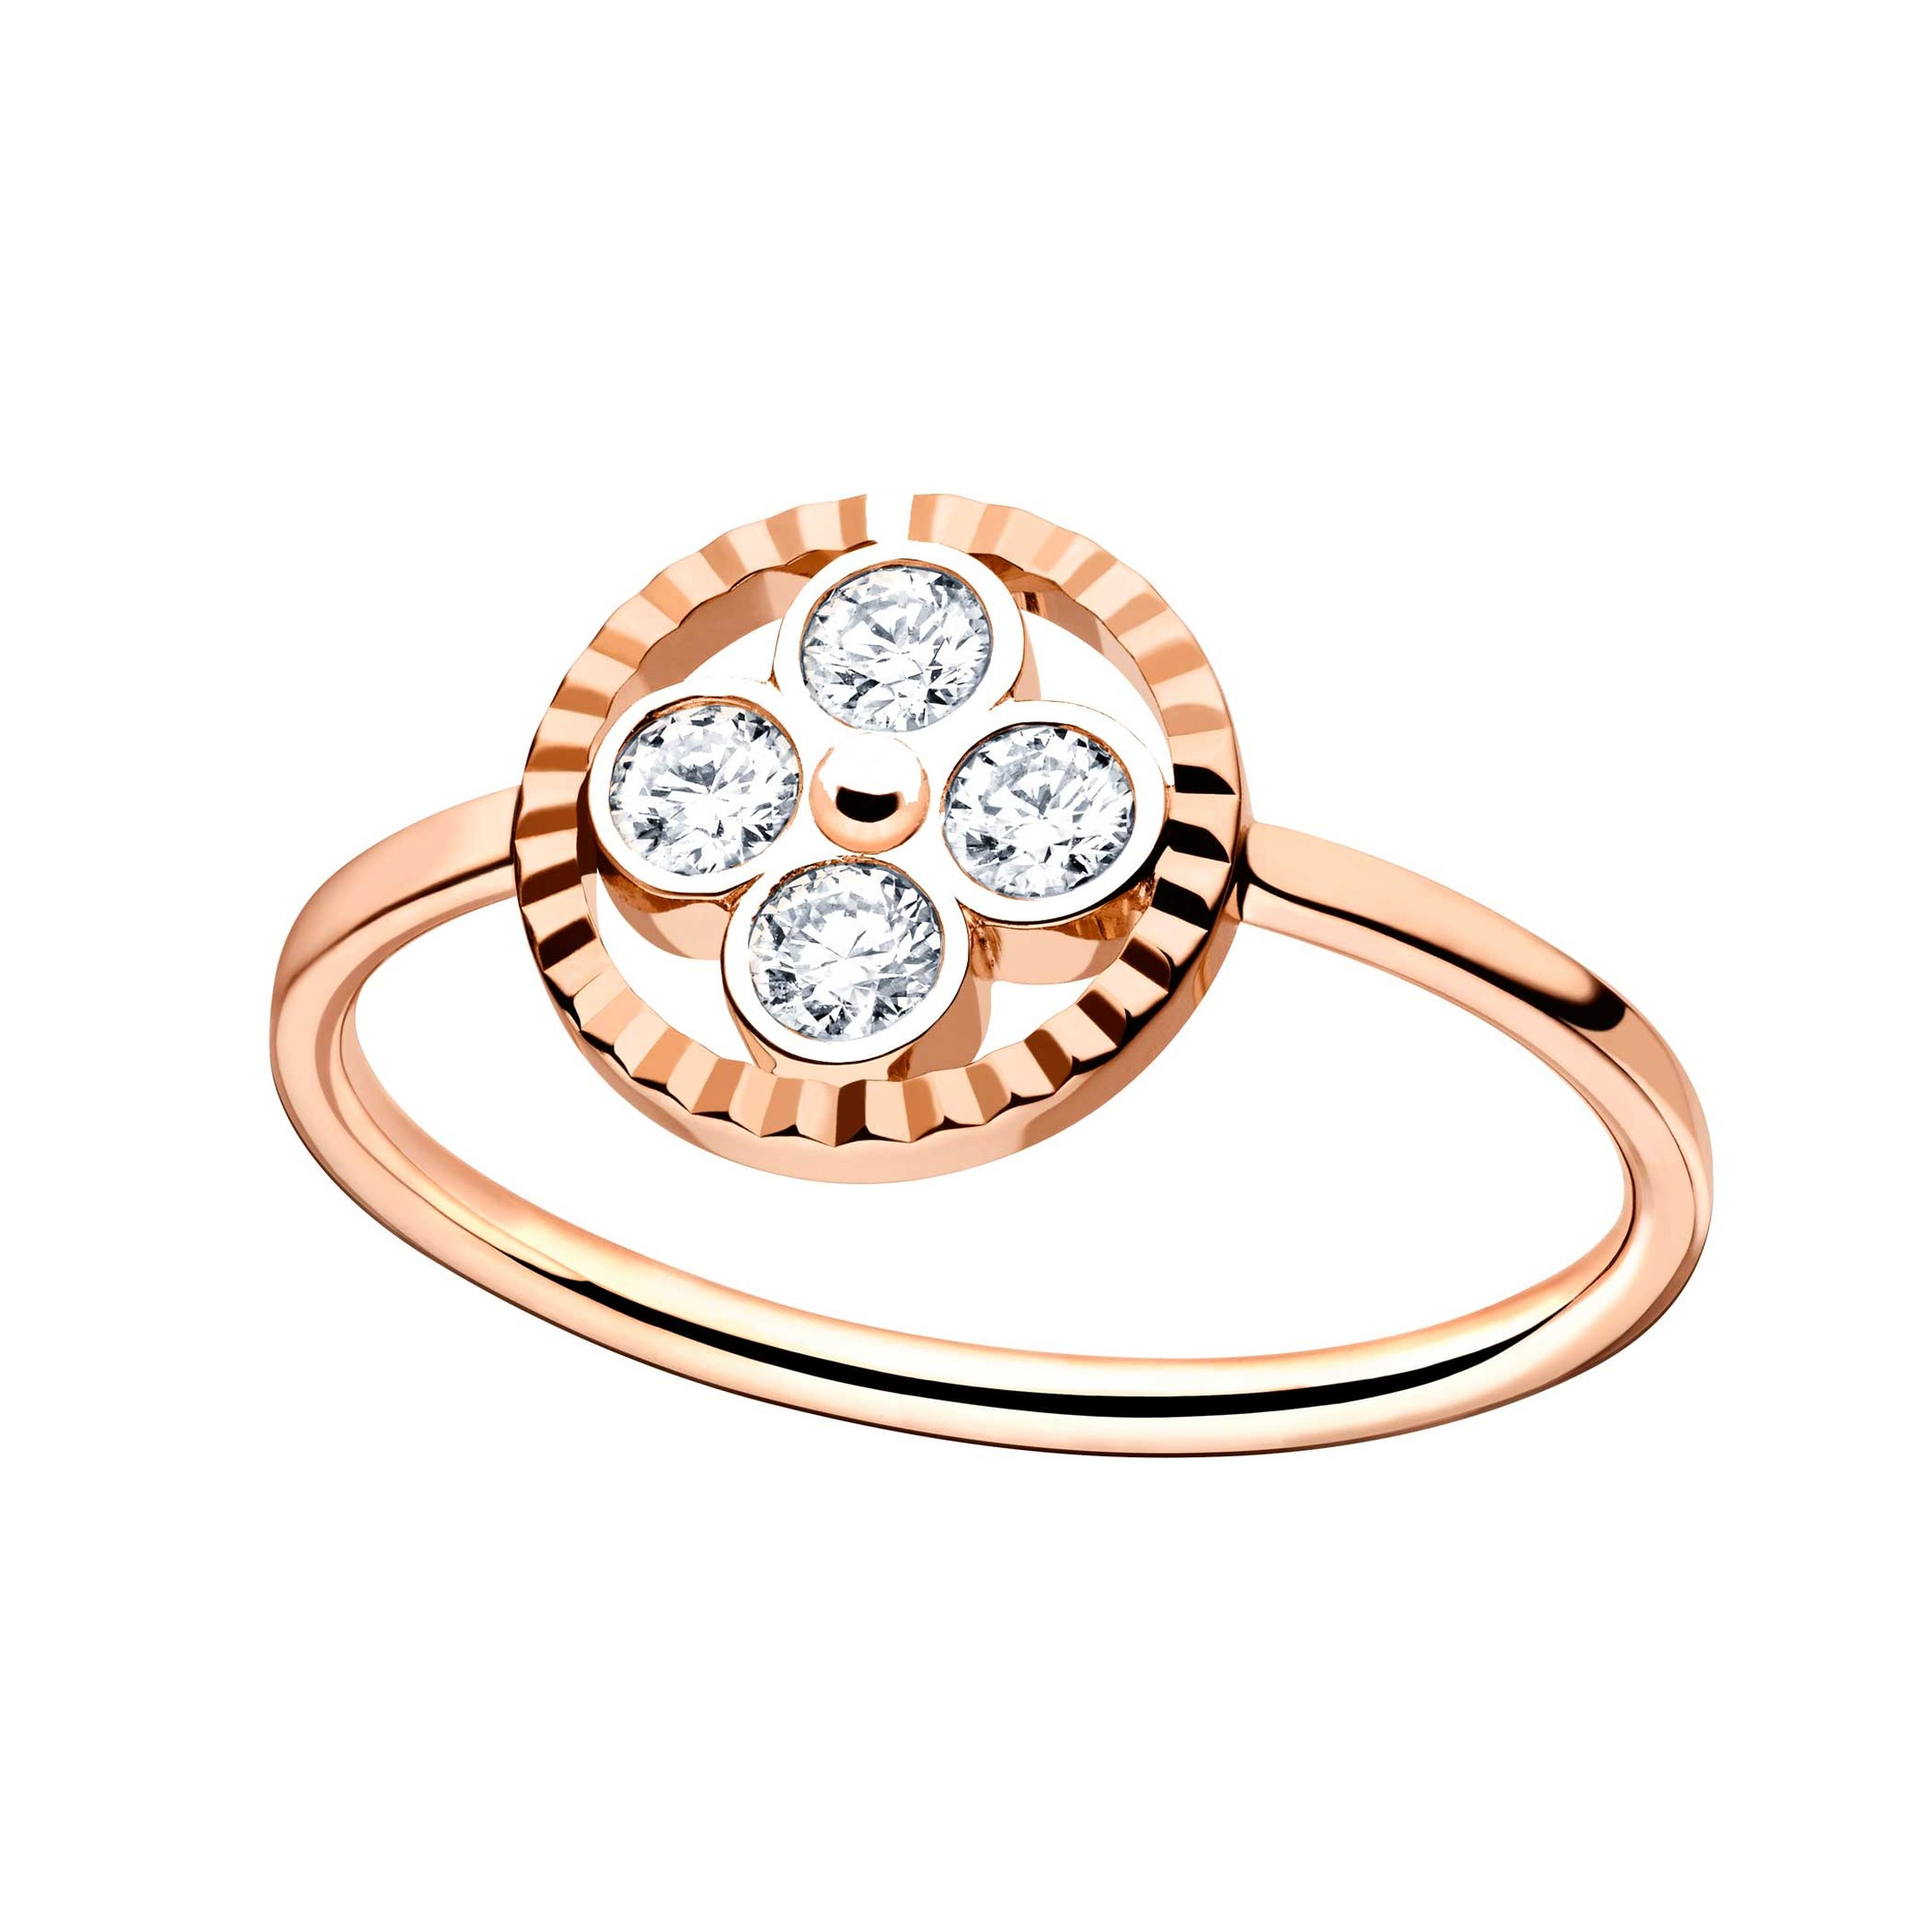 Louis Vuitton Monogram Sun and Stars collection Sun ring in rose gold_zoom